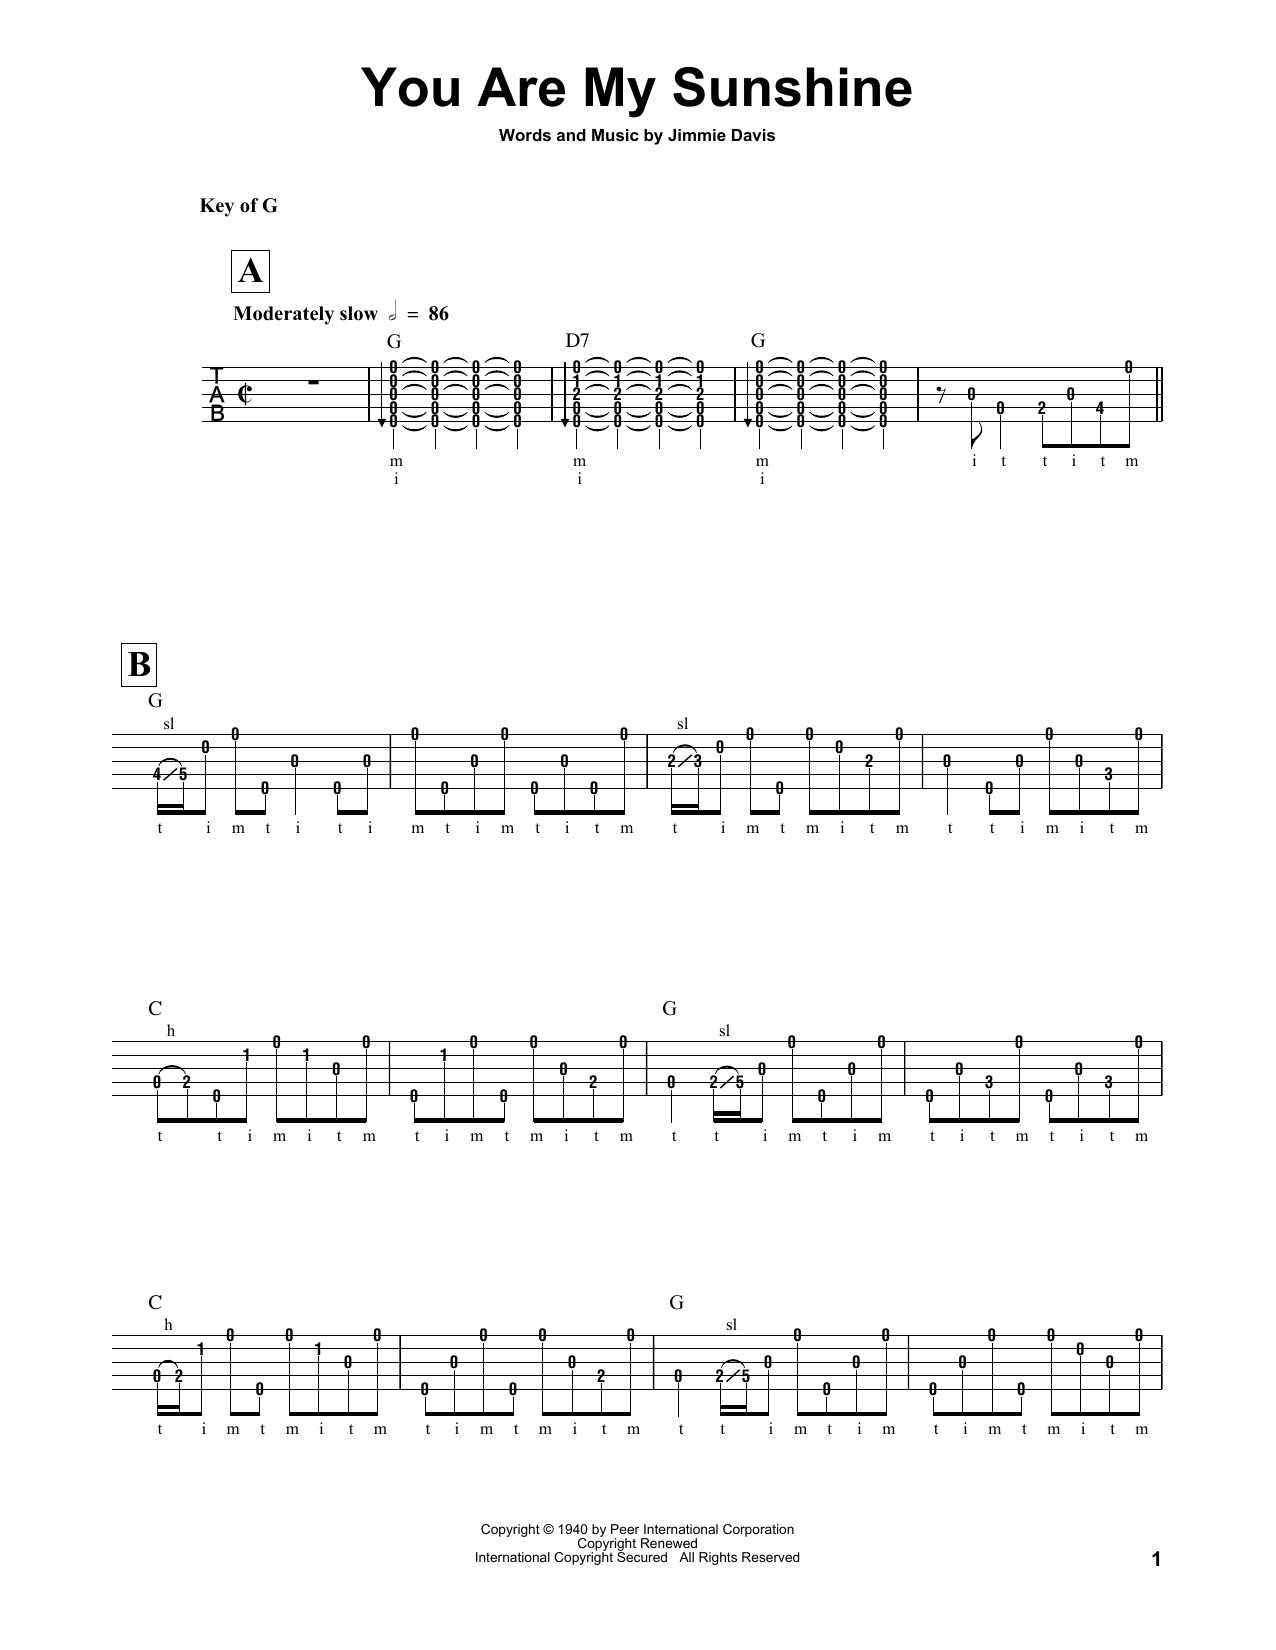 Jimmie Davis You Are My Sunshine sheet music notes and chords. Download Printable PDF.